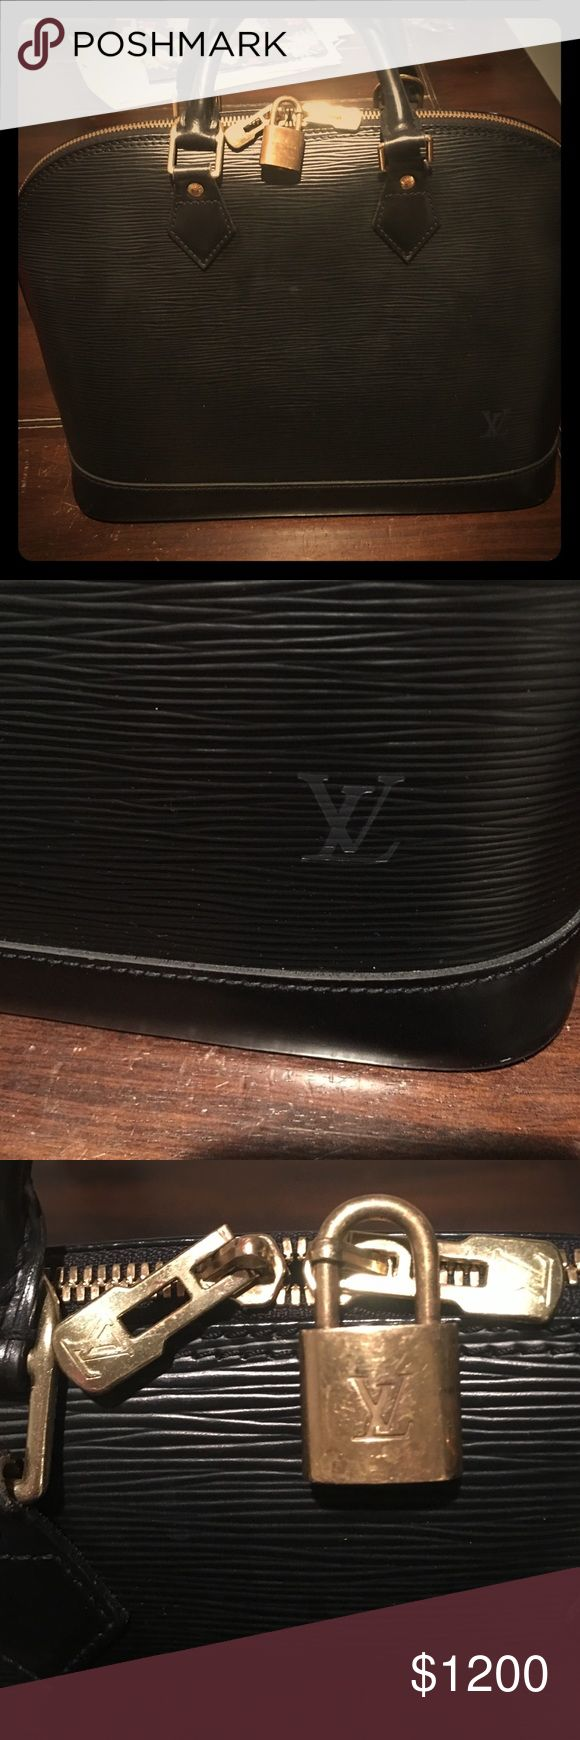 Black LV Alma PM 🖤 Just received in another amazing trade 💕 it's in beautifully perfect condition! Sells on the Louie Vuitton website for $2,120 before tax. Comes with lock but no key. Only available for selective trades, because I love this 😍 Louis Vuitton Bags